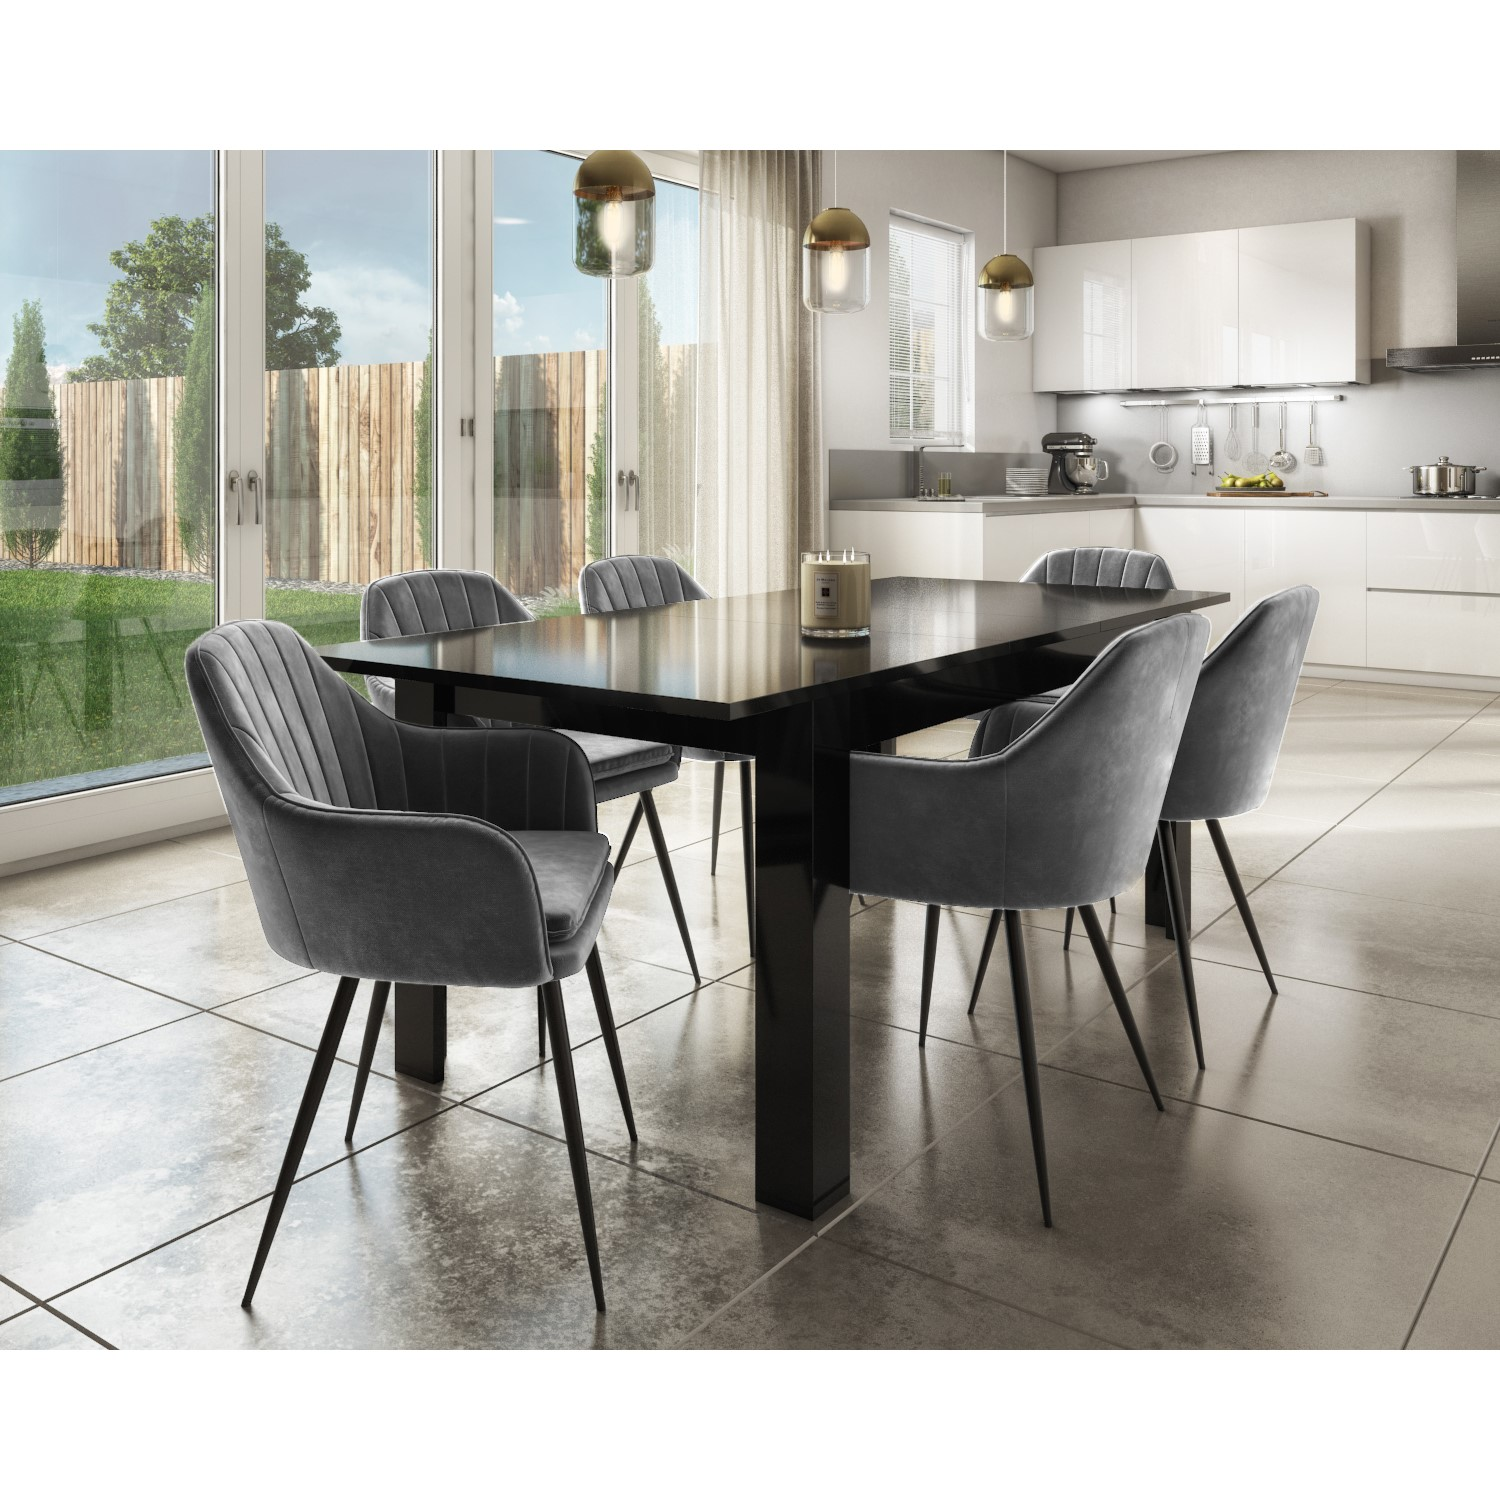 Set Of 2 Grey Velvet Dining Tub Chairs, Dining Room Chairs Uk Black